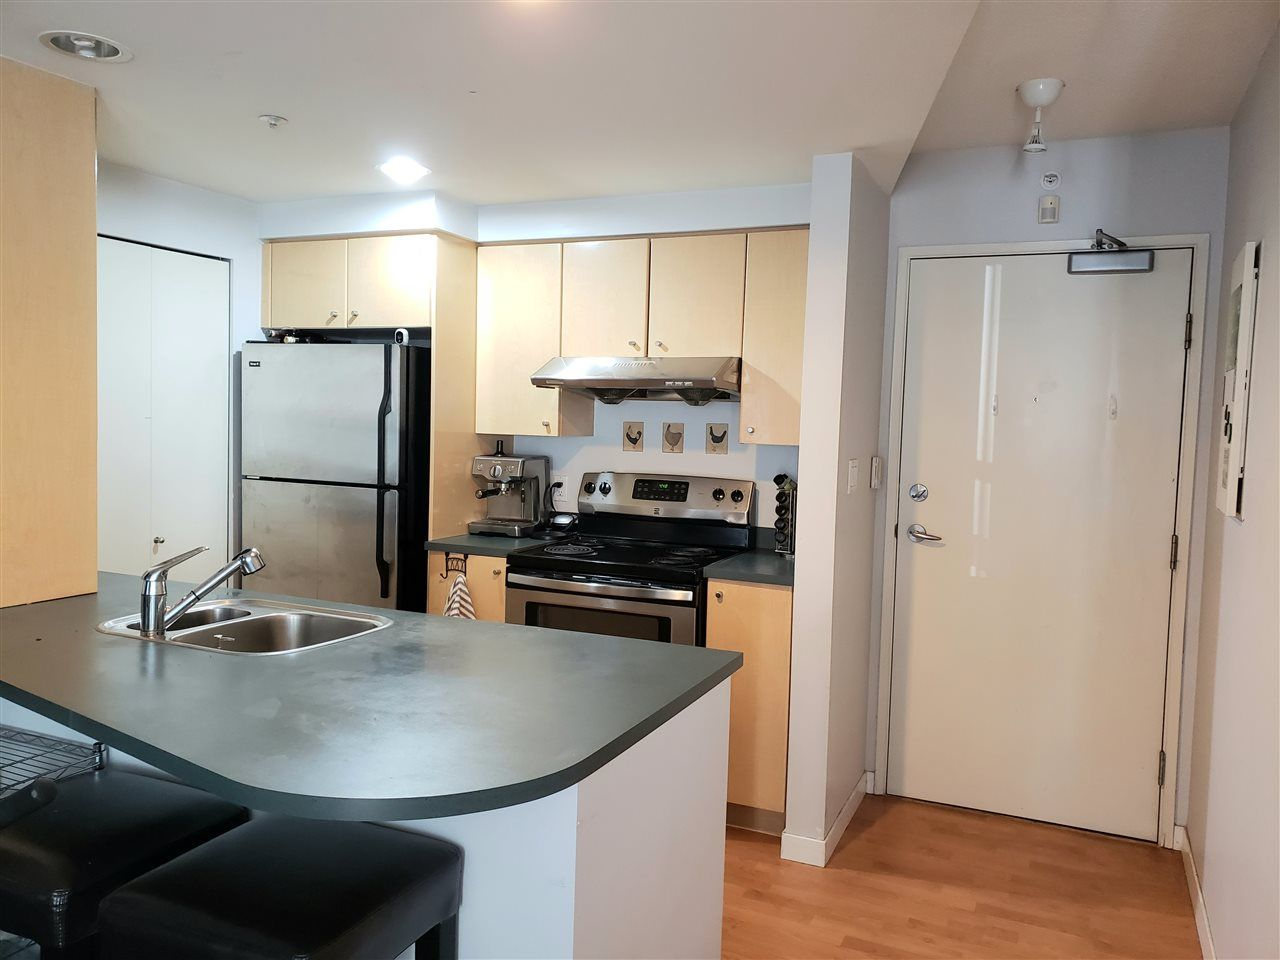 """Main Photo: 1501 1009 EXPO Boulevard in Vancouver: Yaletown Condo for sale in """"LANDMARK 33"""" (Vancouver West)  : MLS®# R2579833"""